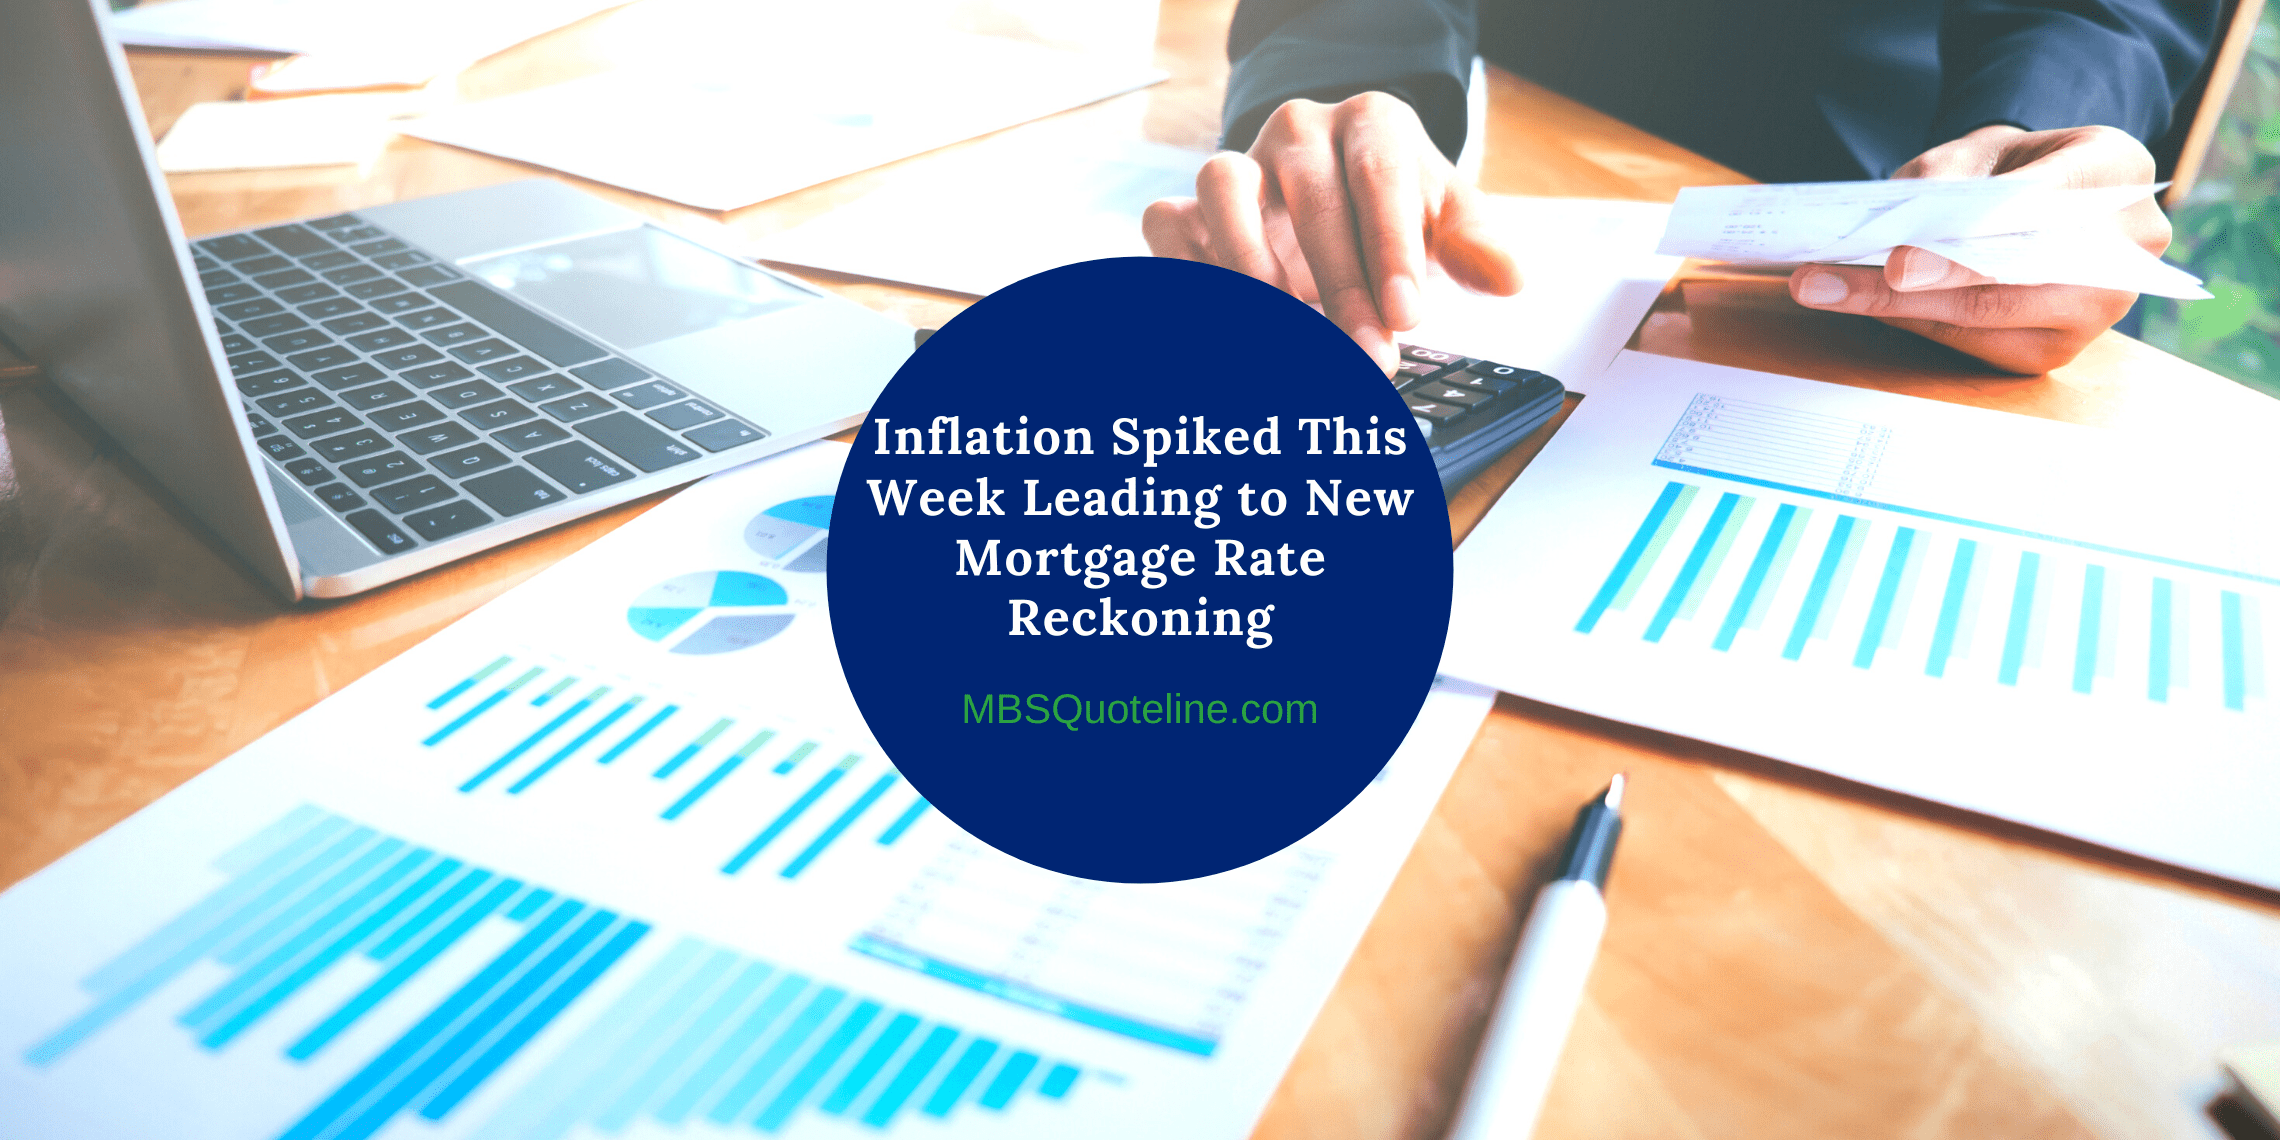 inflation spiked this week leading new mortgage rate reckoning mortgagetime mbsquoteline featured